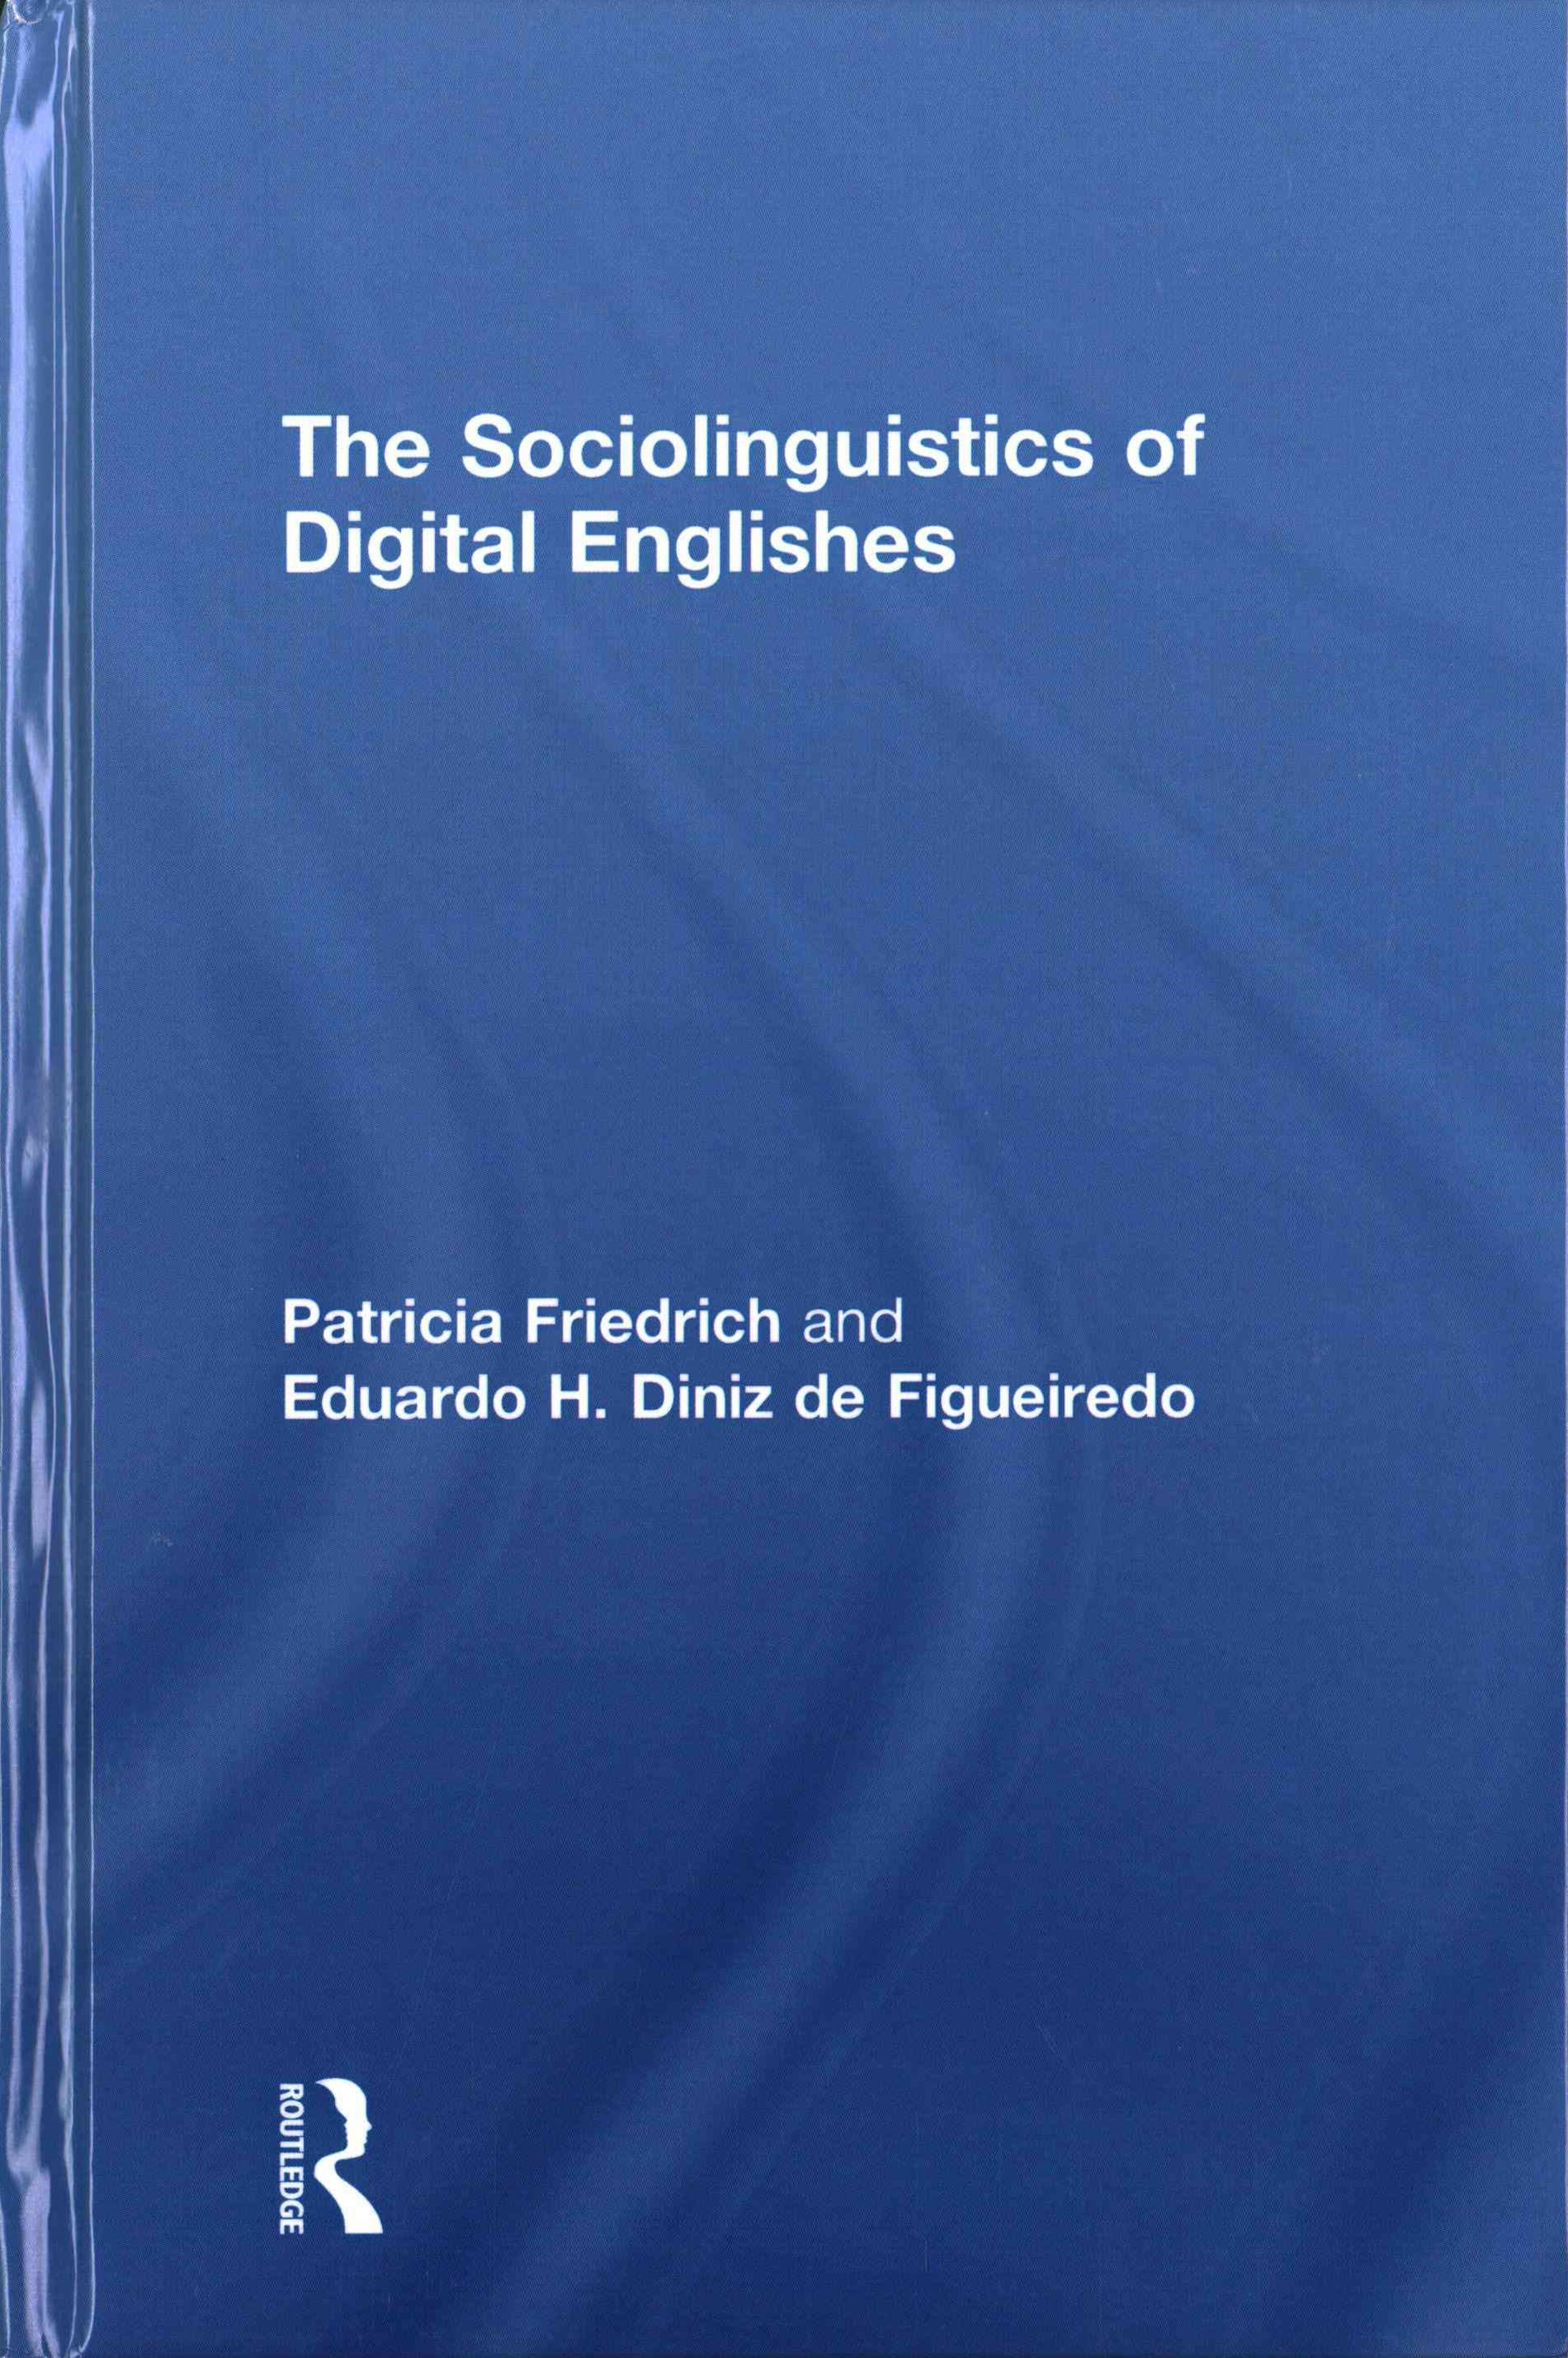 The Sociolinguistics of Digital Englishes